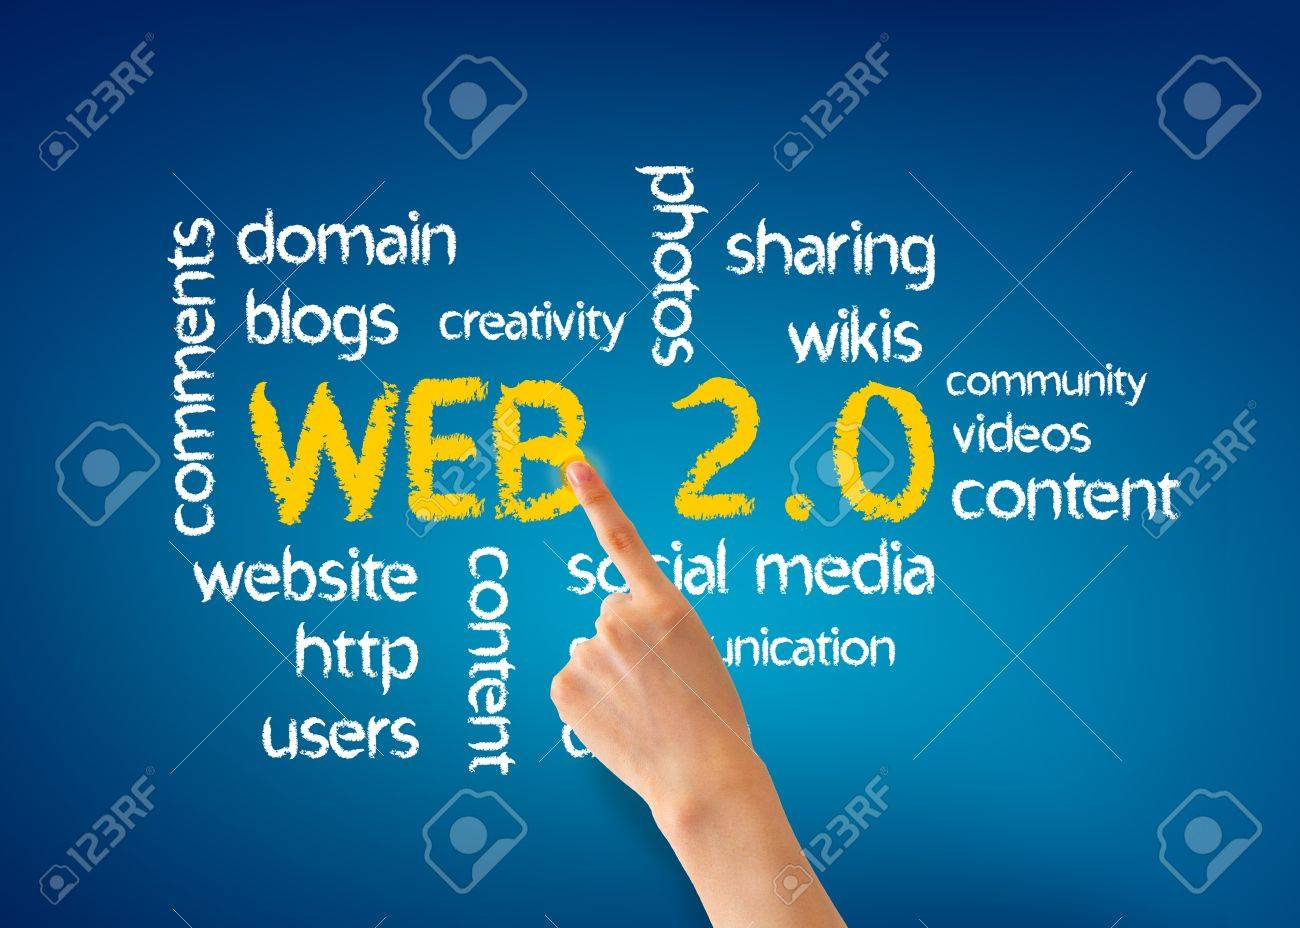 500 of Highest Quality WEB 2.0 BLOGS